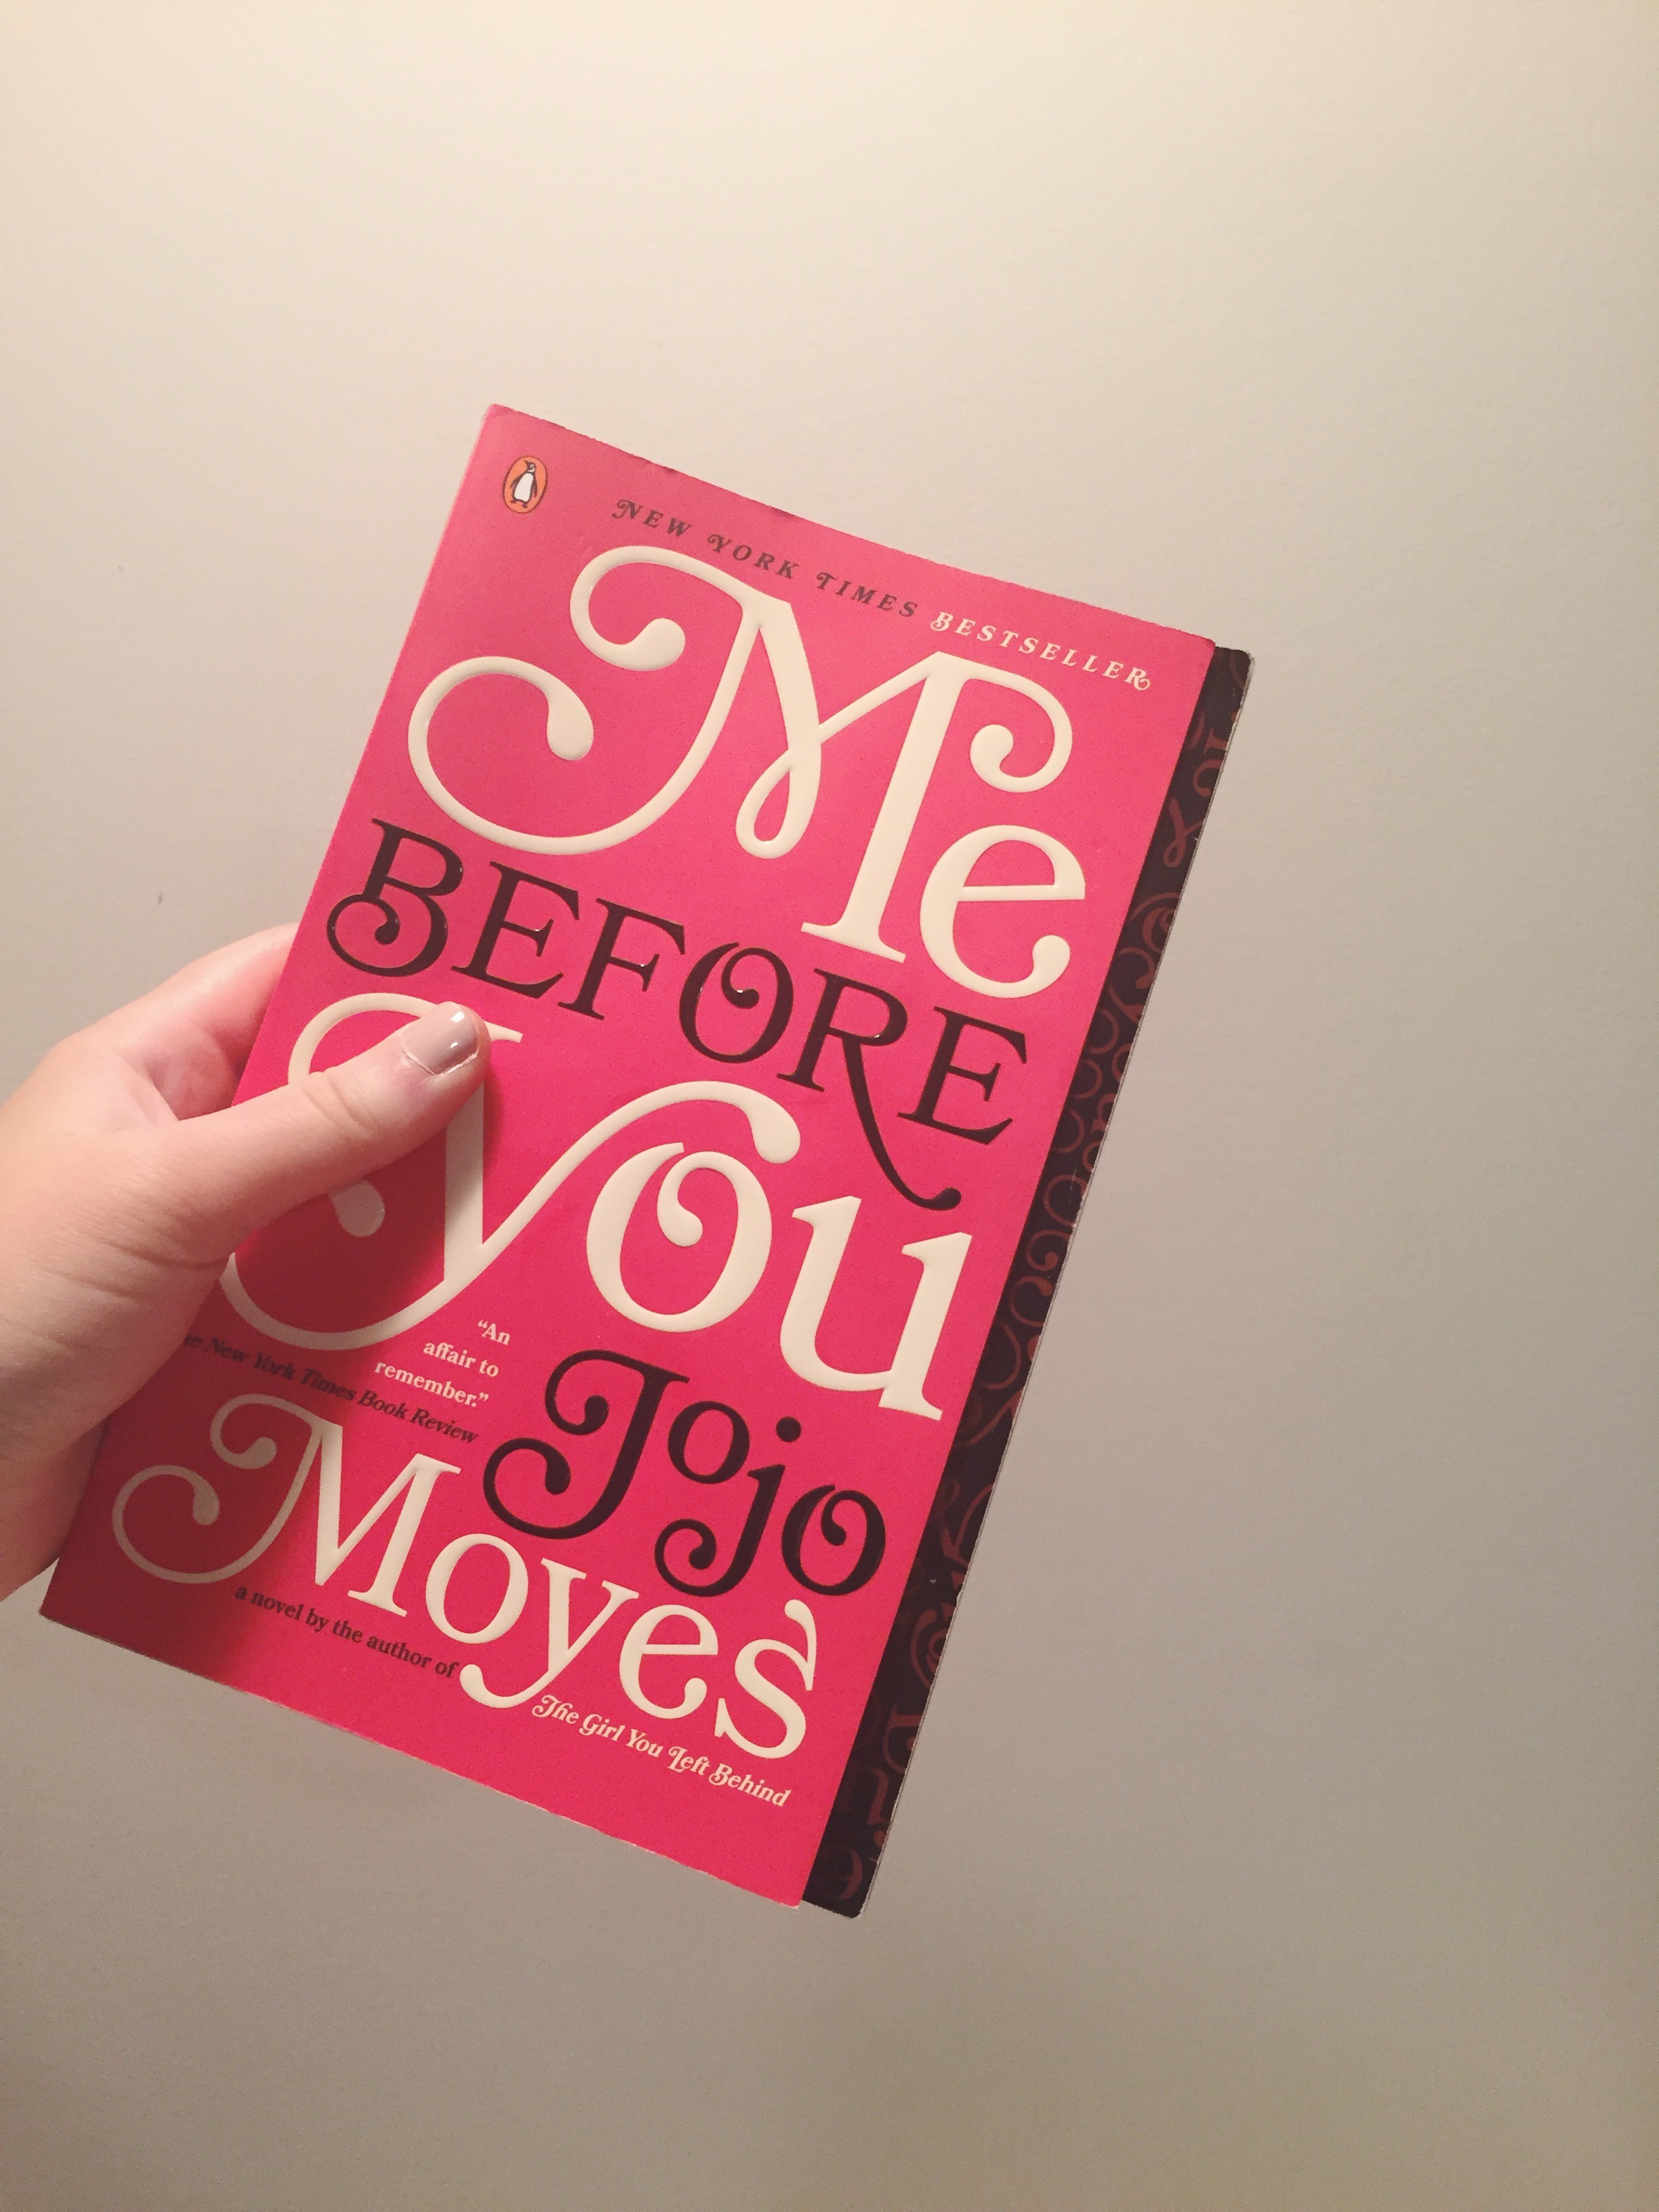 mebeforeyou-bookreview